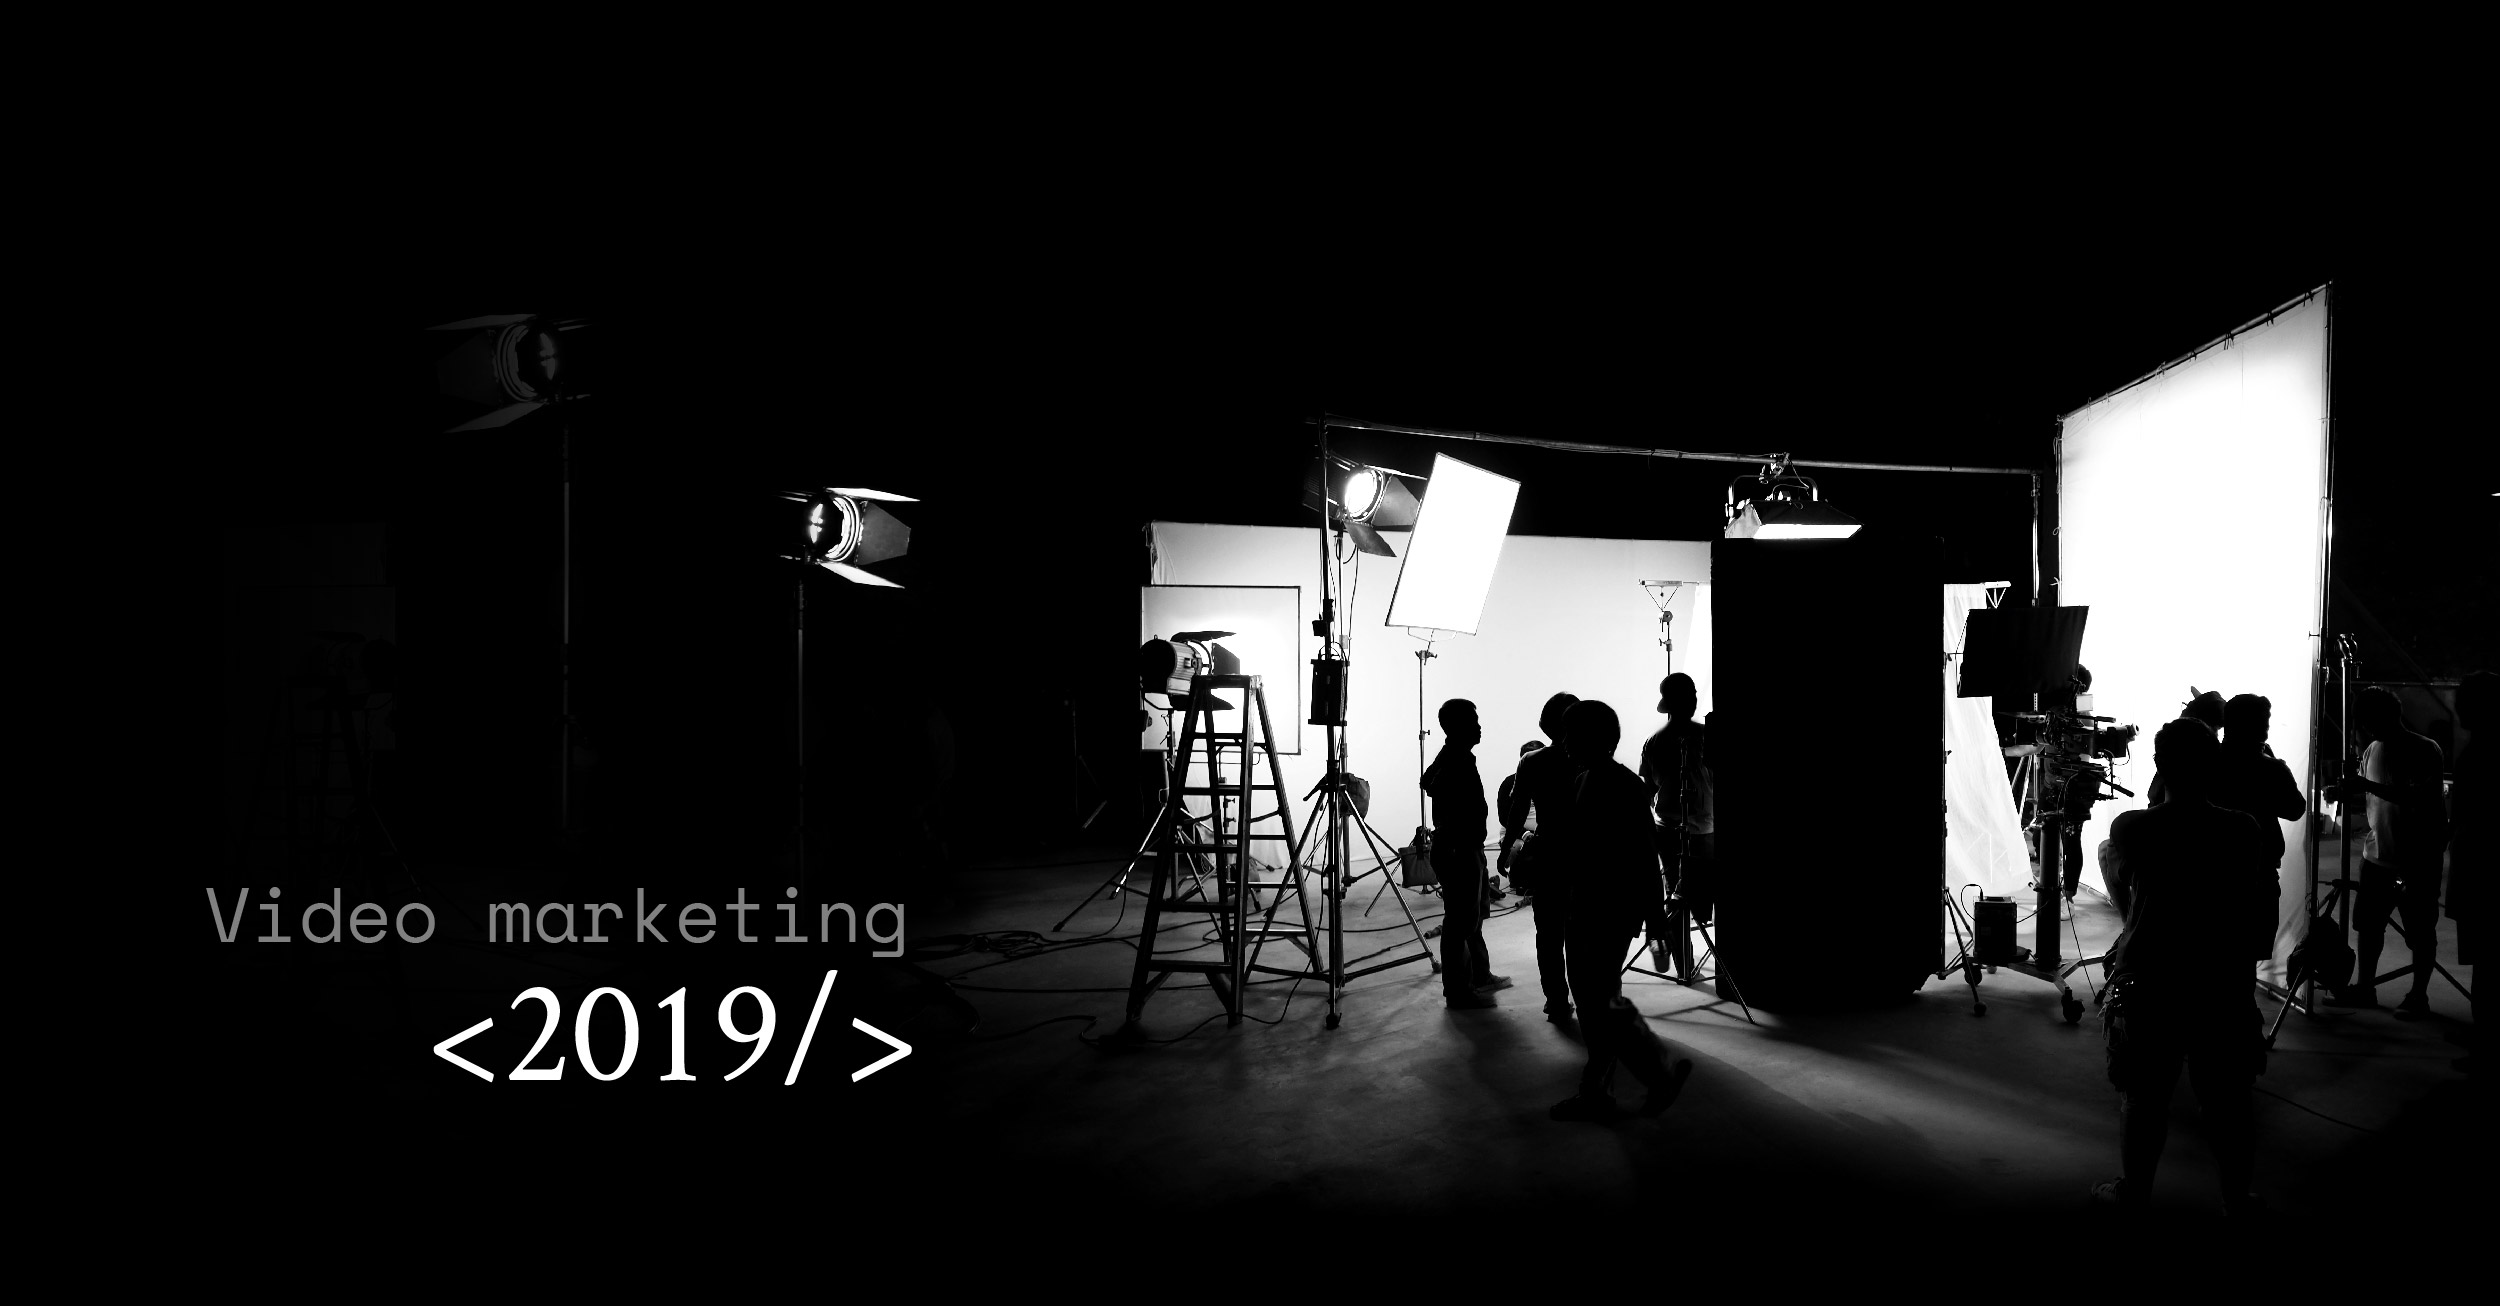 Video marketing 2019: La mejor forma de publicitar tu marca